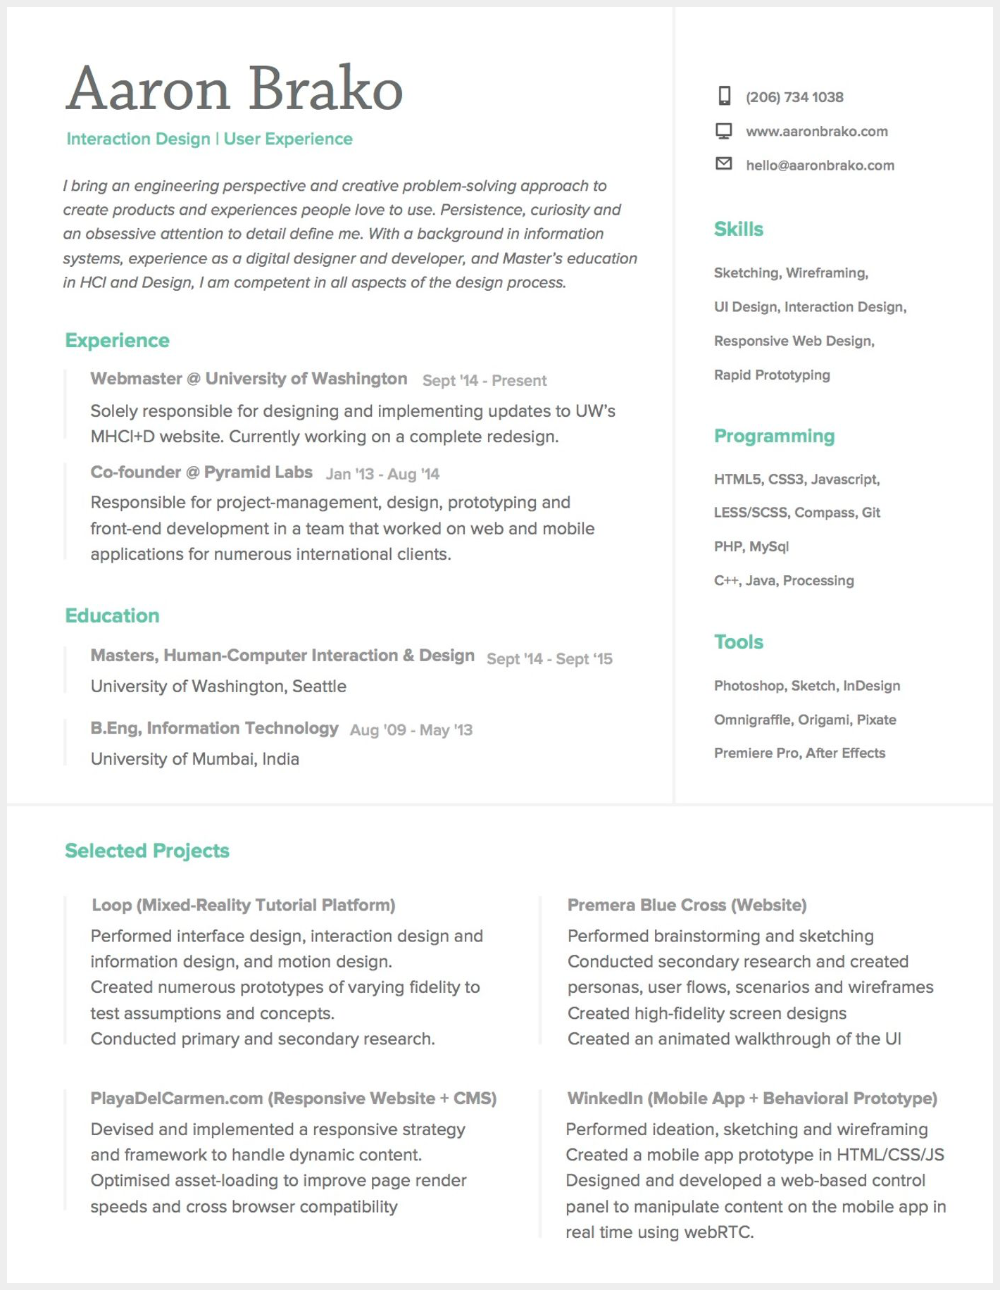 8 Brilliant Ux Designer Resumes That Secured Job Offers From Google In 2020 Resume Design Infographic Resume Good Resume Examples